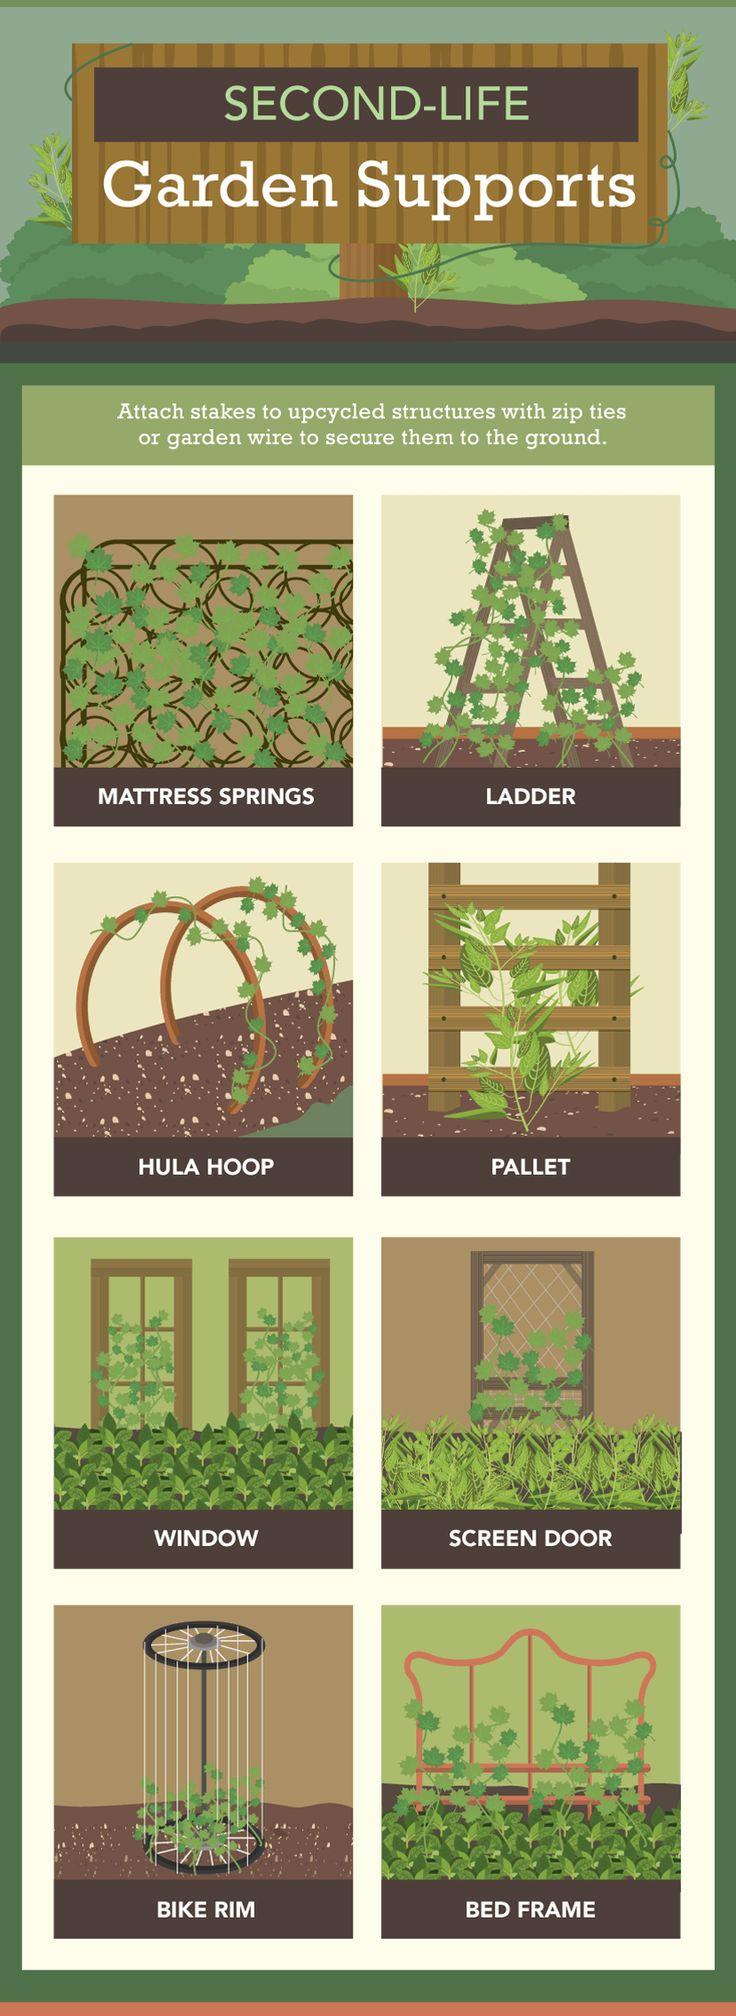 Upcycled Garden Supports - Garden Supports